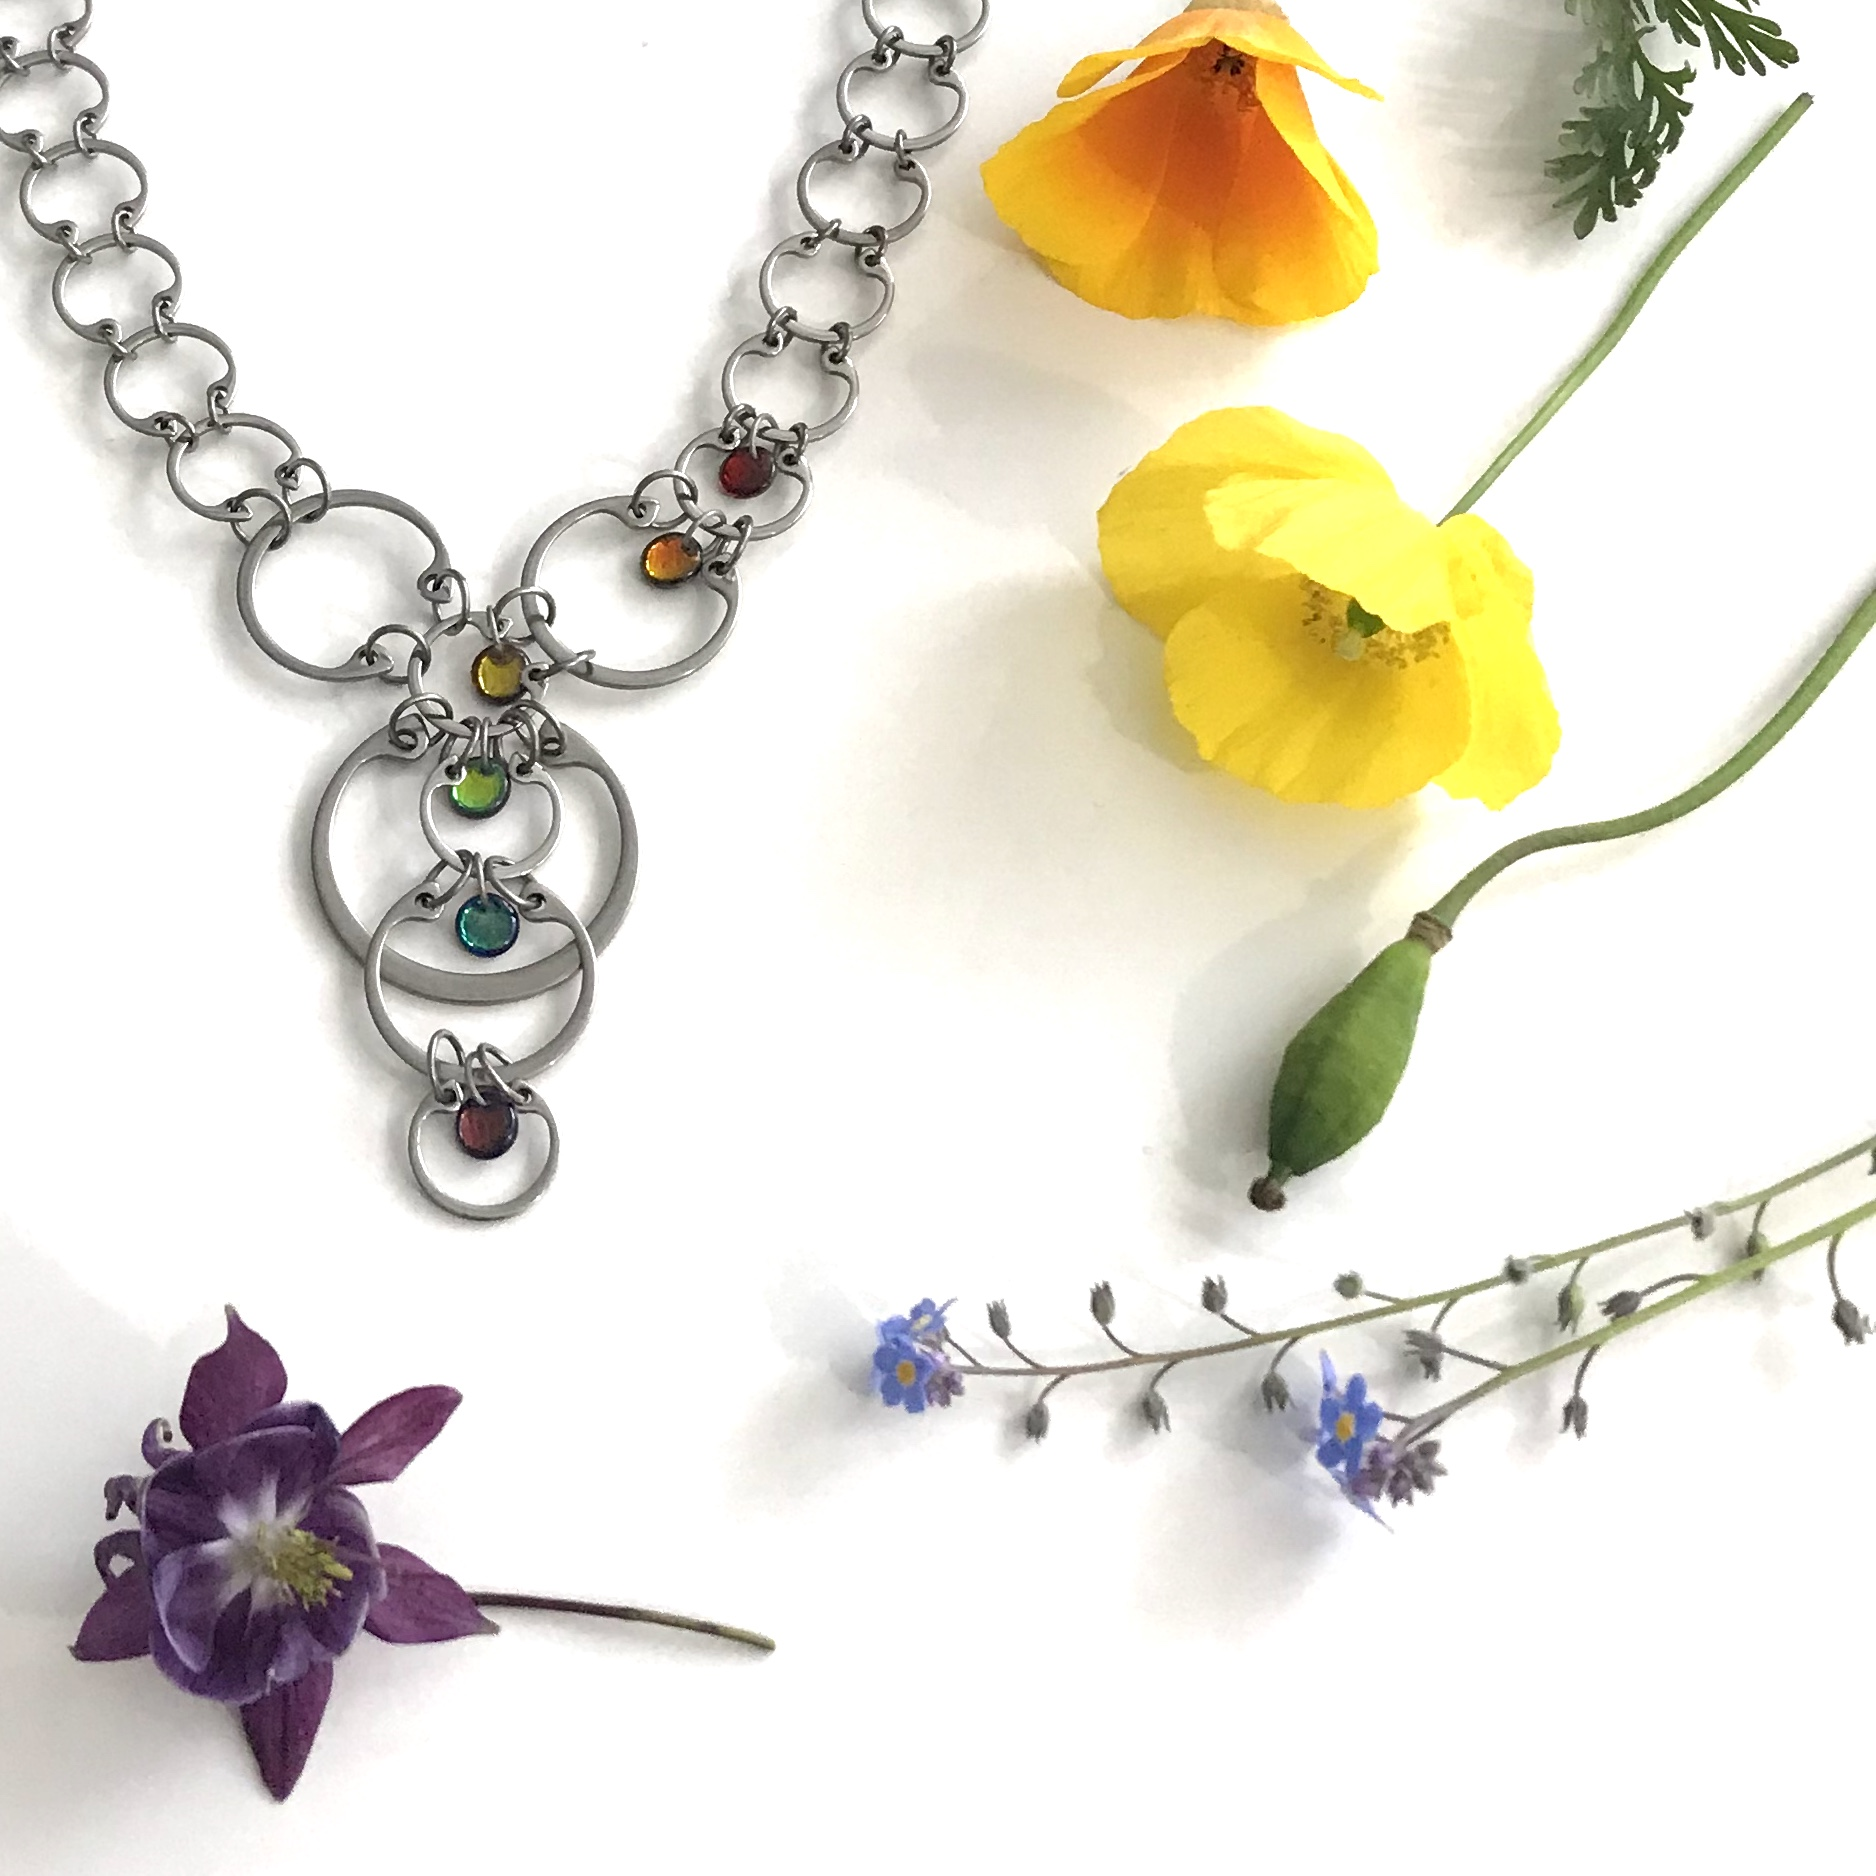 Cascading Rainbows Necklace with a rainbow of flowers